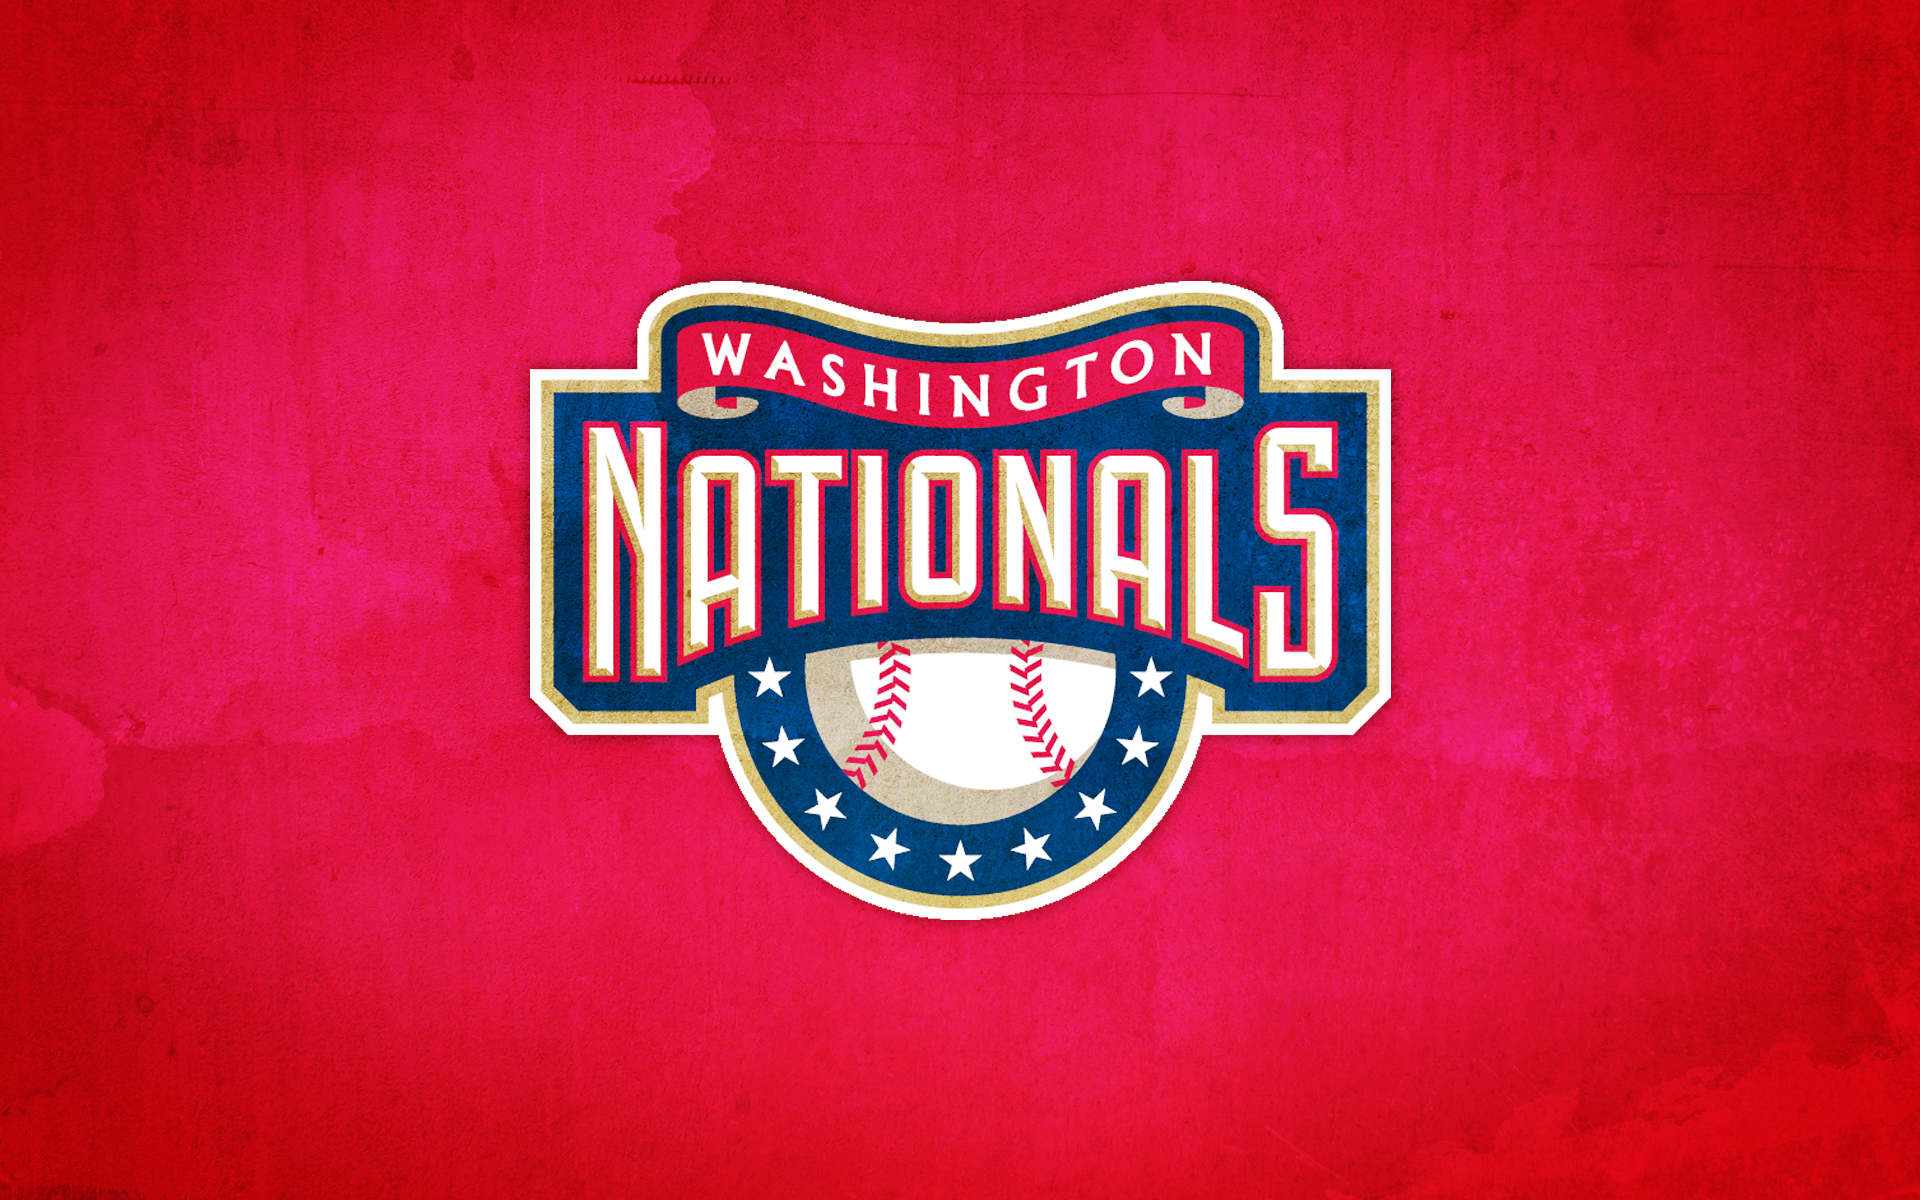 Washington Nationals 1920 x 1200 1024 x 640 1920x1200